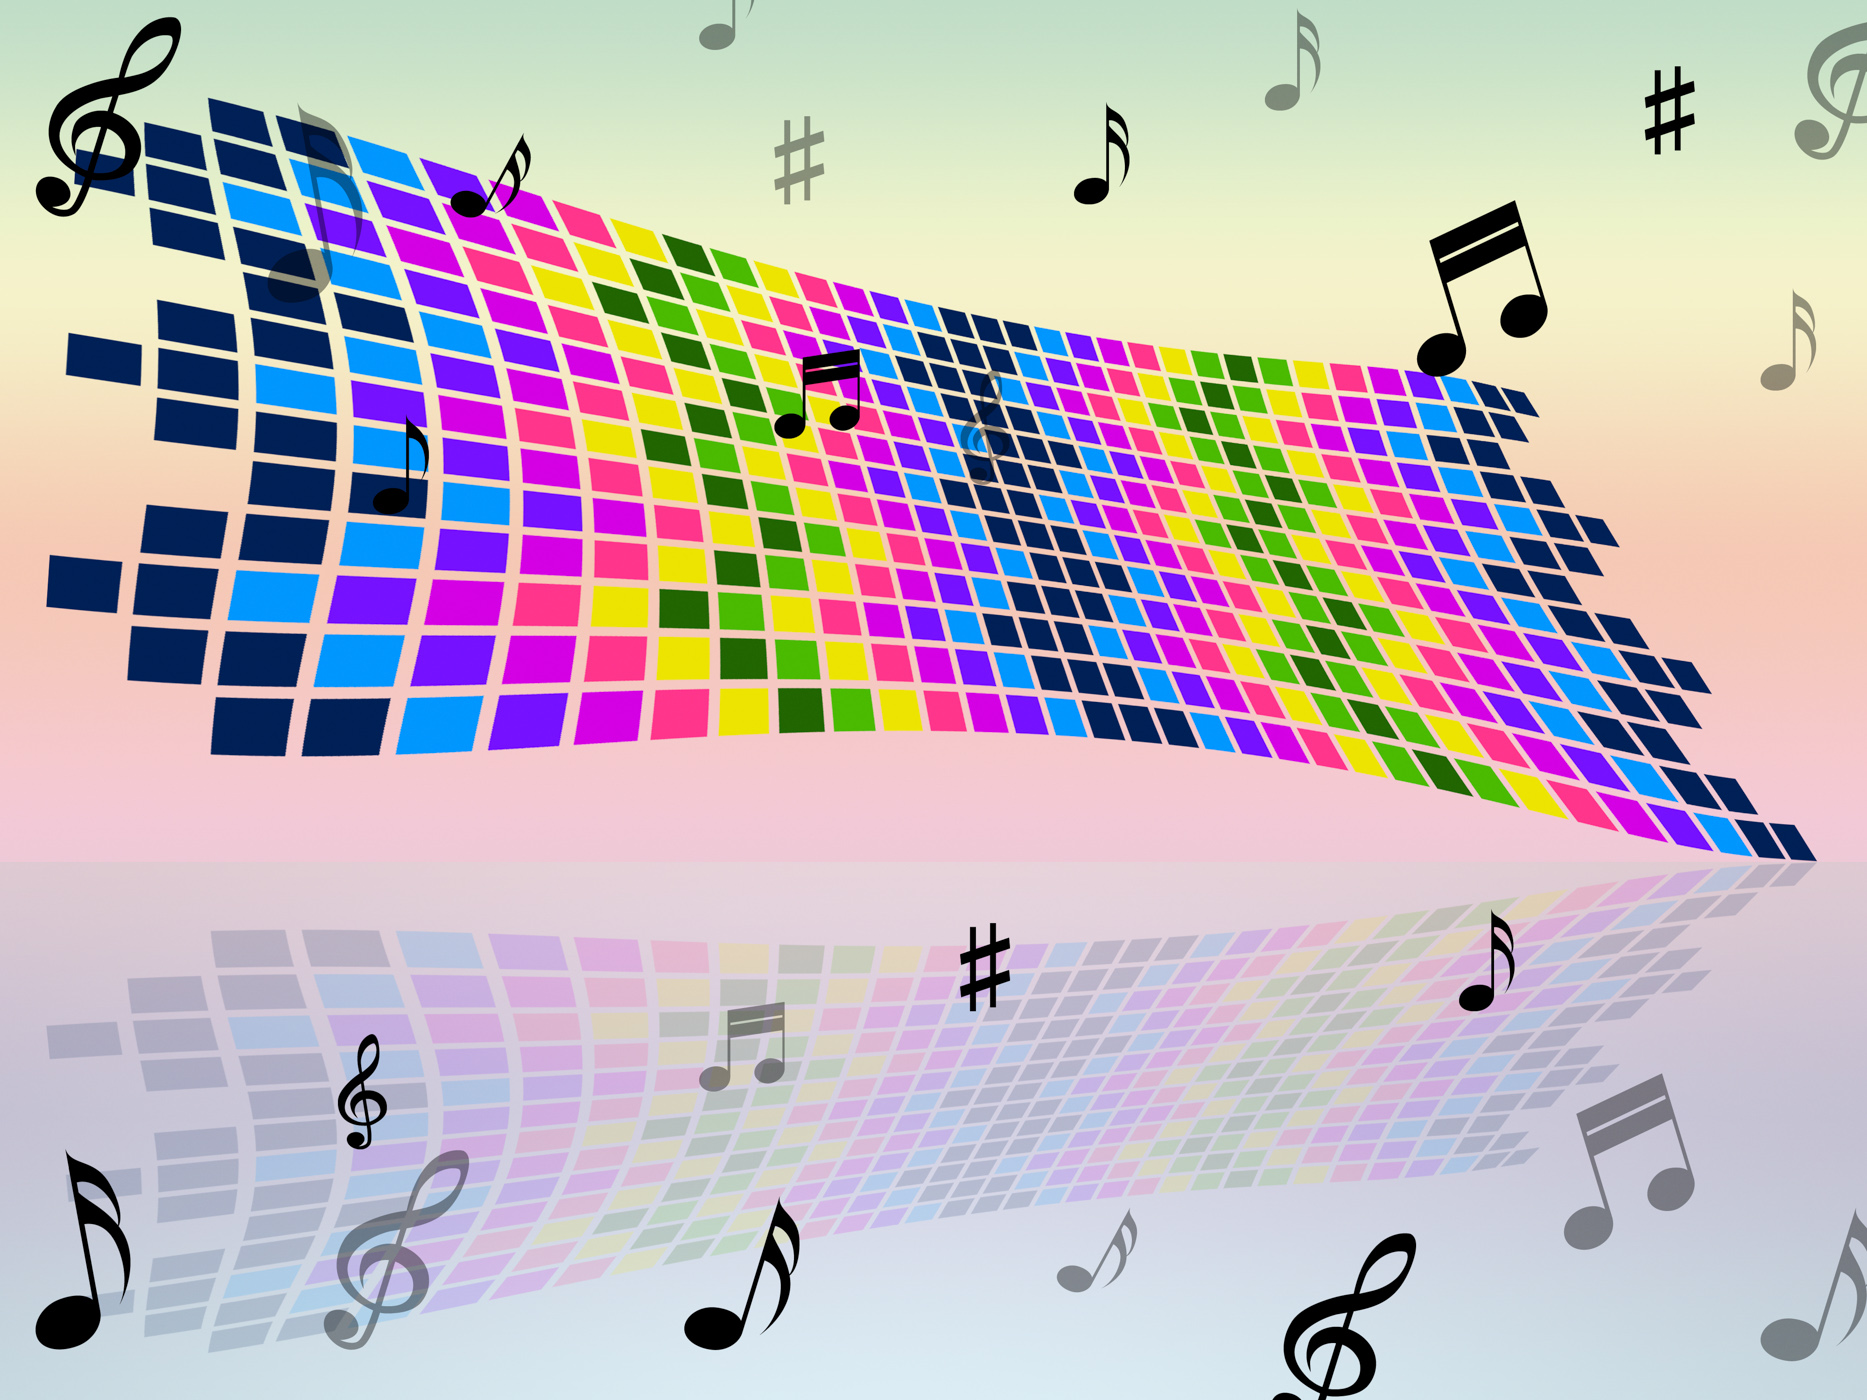 Notes color indicates sound track and artwork photo